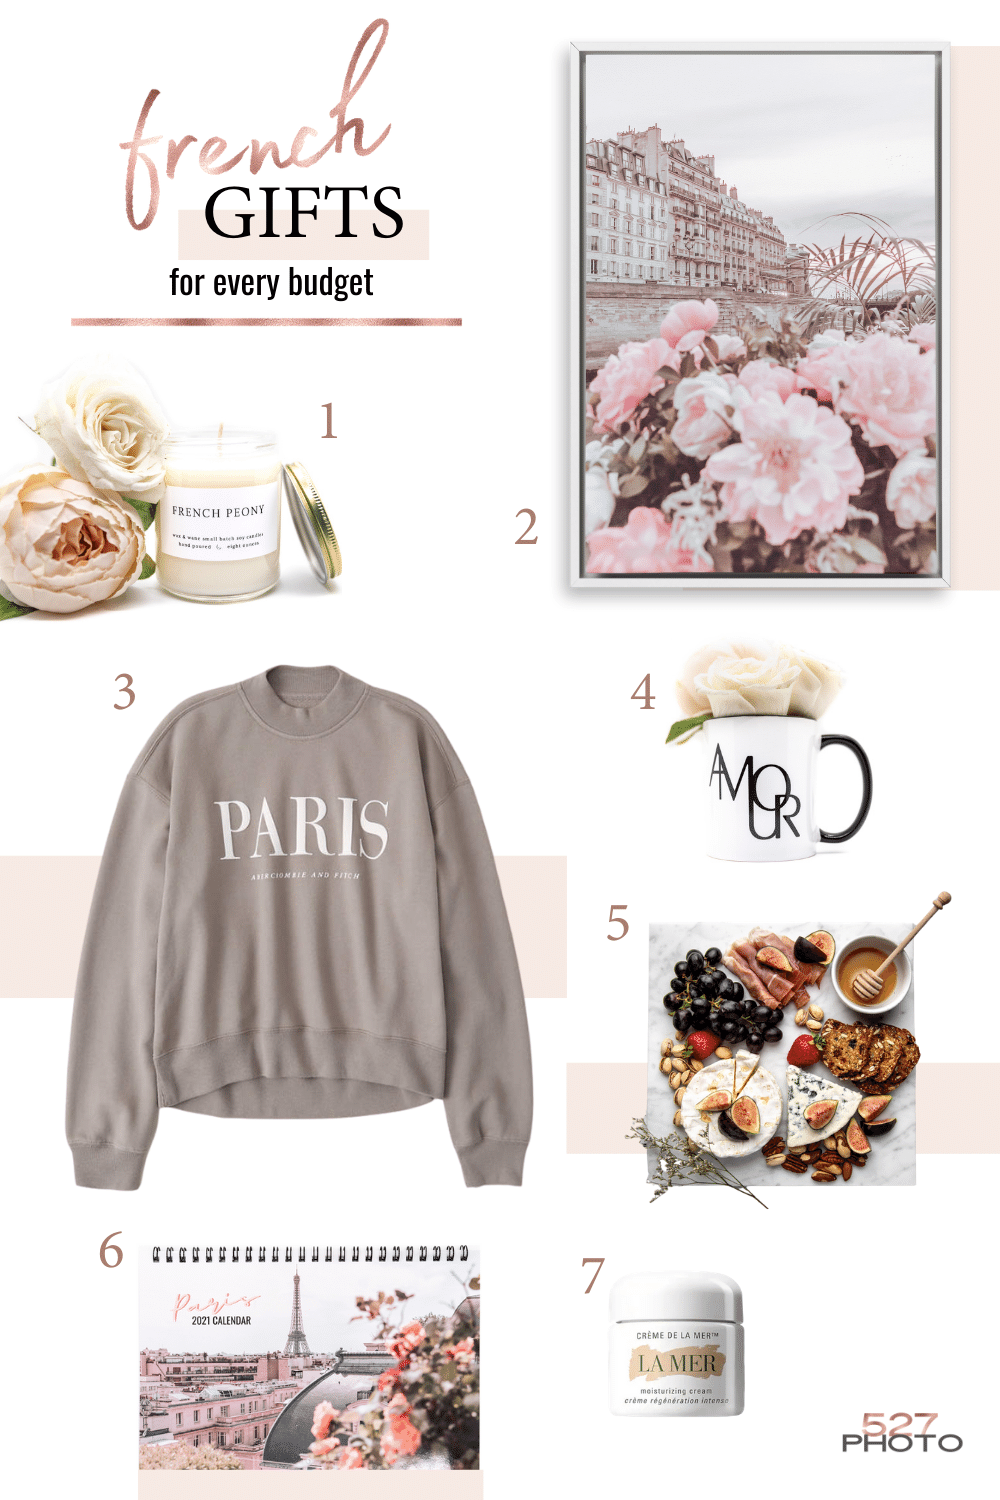 French gifts for a daughter, sister, best friend or coworker